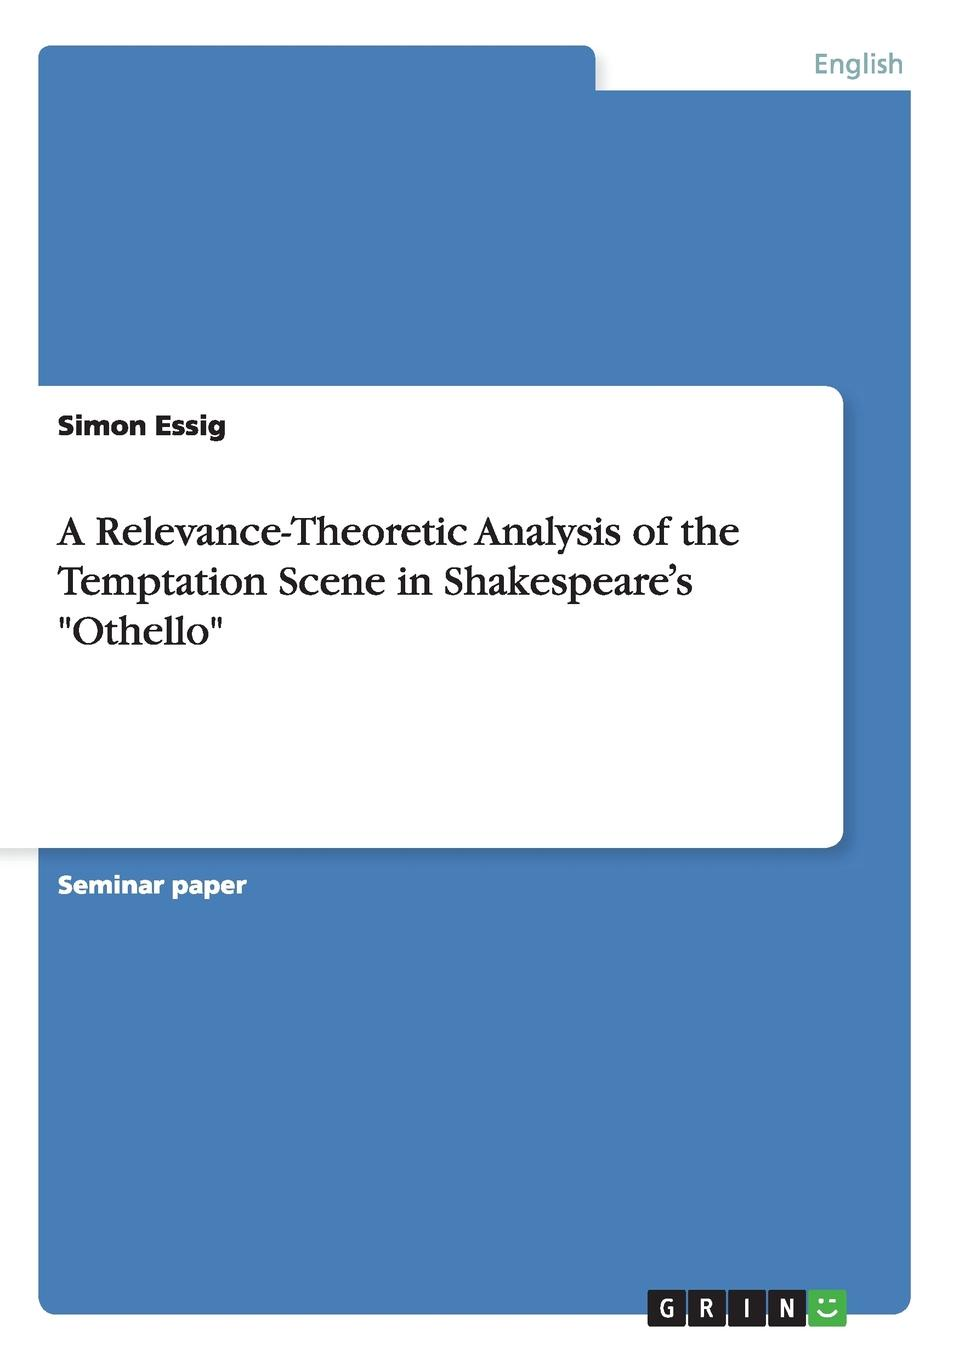 Simon Essig A Relevance-Theoretic Analysis of the Temptation Scene in Shakespeare.s Othello william shakespeare othello